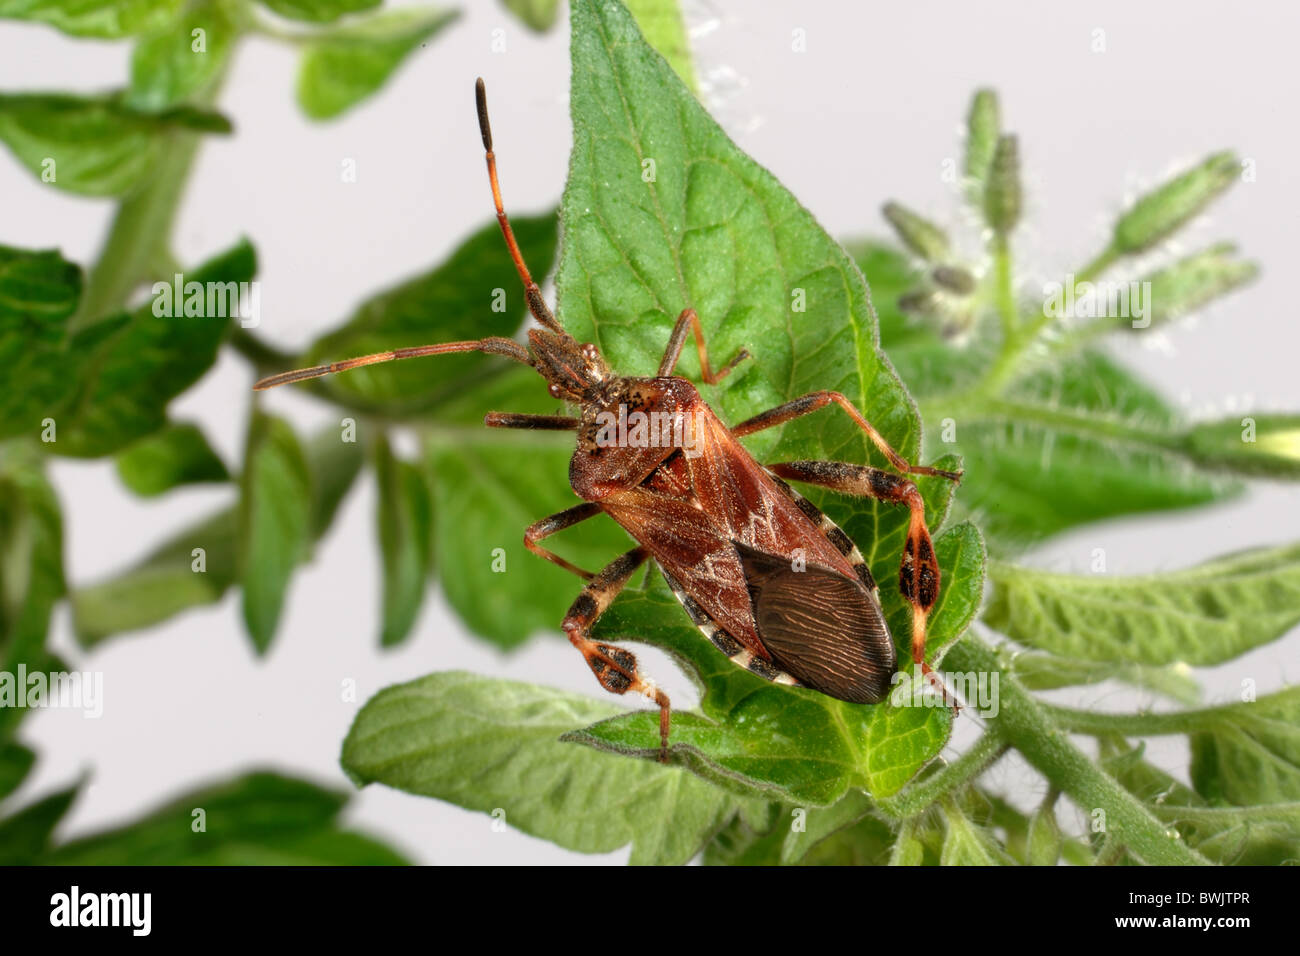 Western conifer bug (Leptinoglossus occidentalis) adult - Stock Image